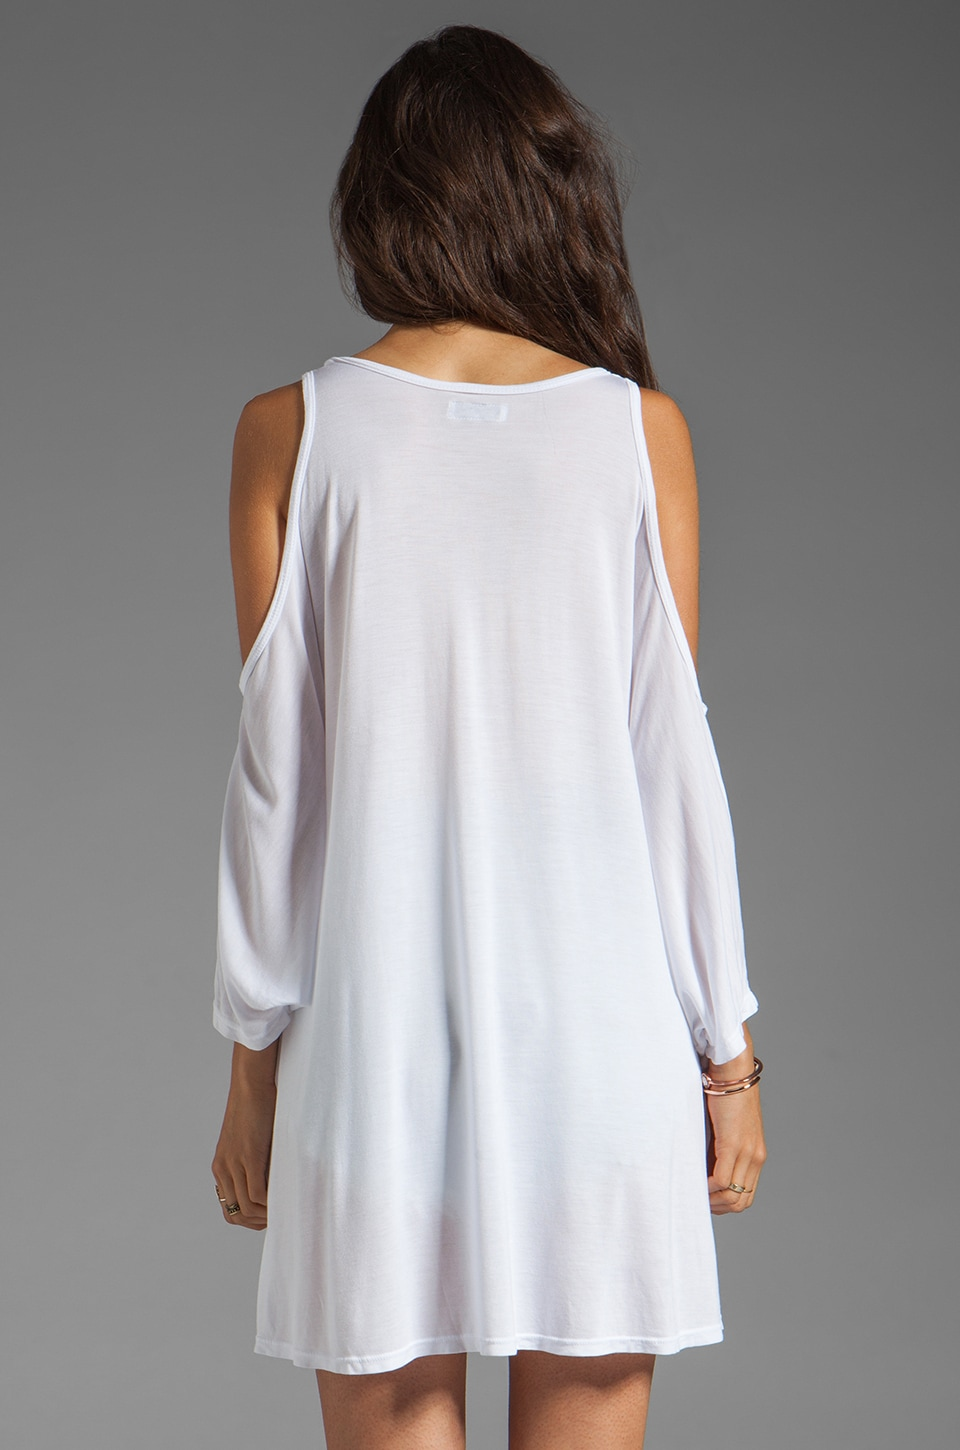 Lauren Moshi Macy Foil Royal Horse Open Shoulder Top in White